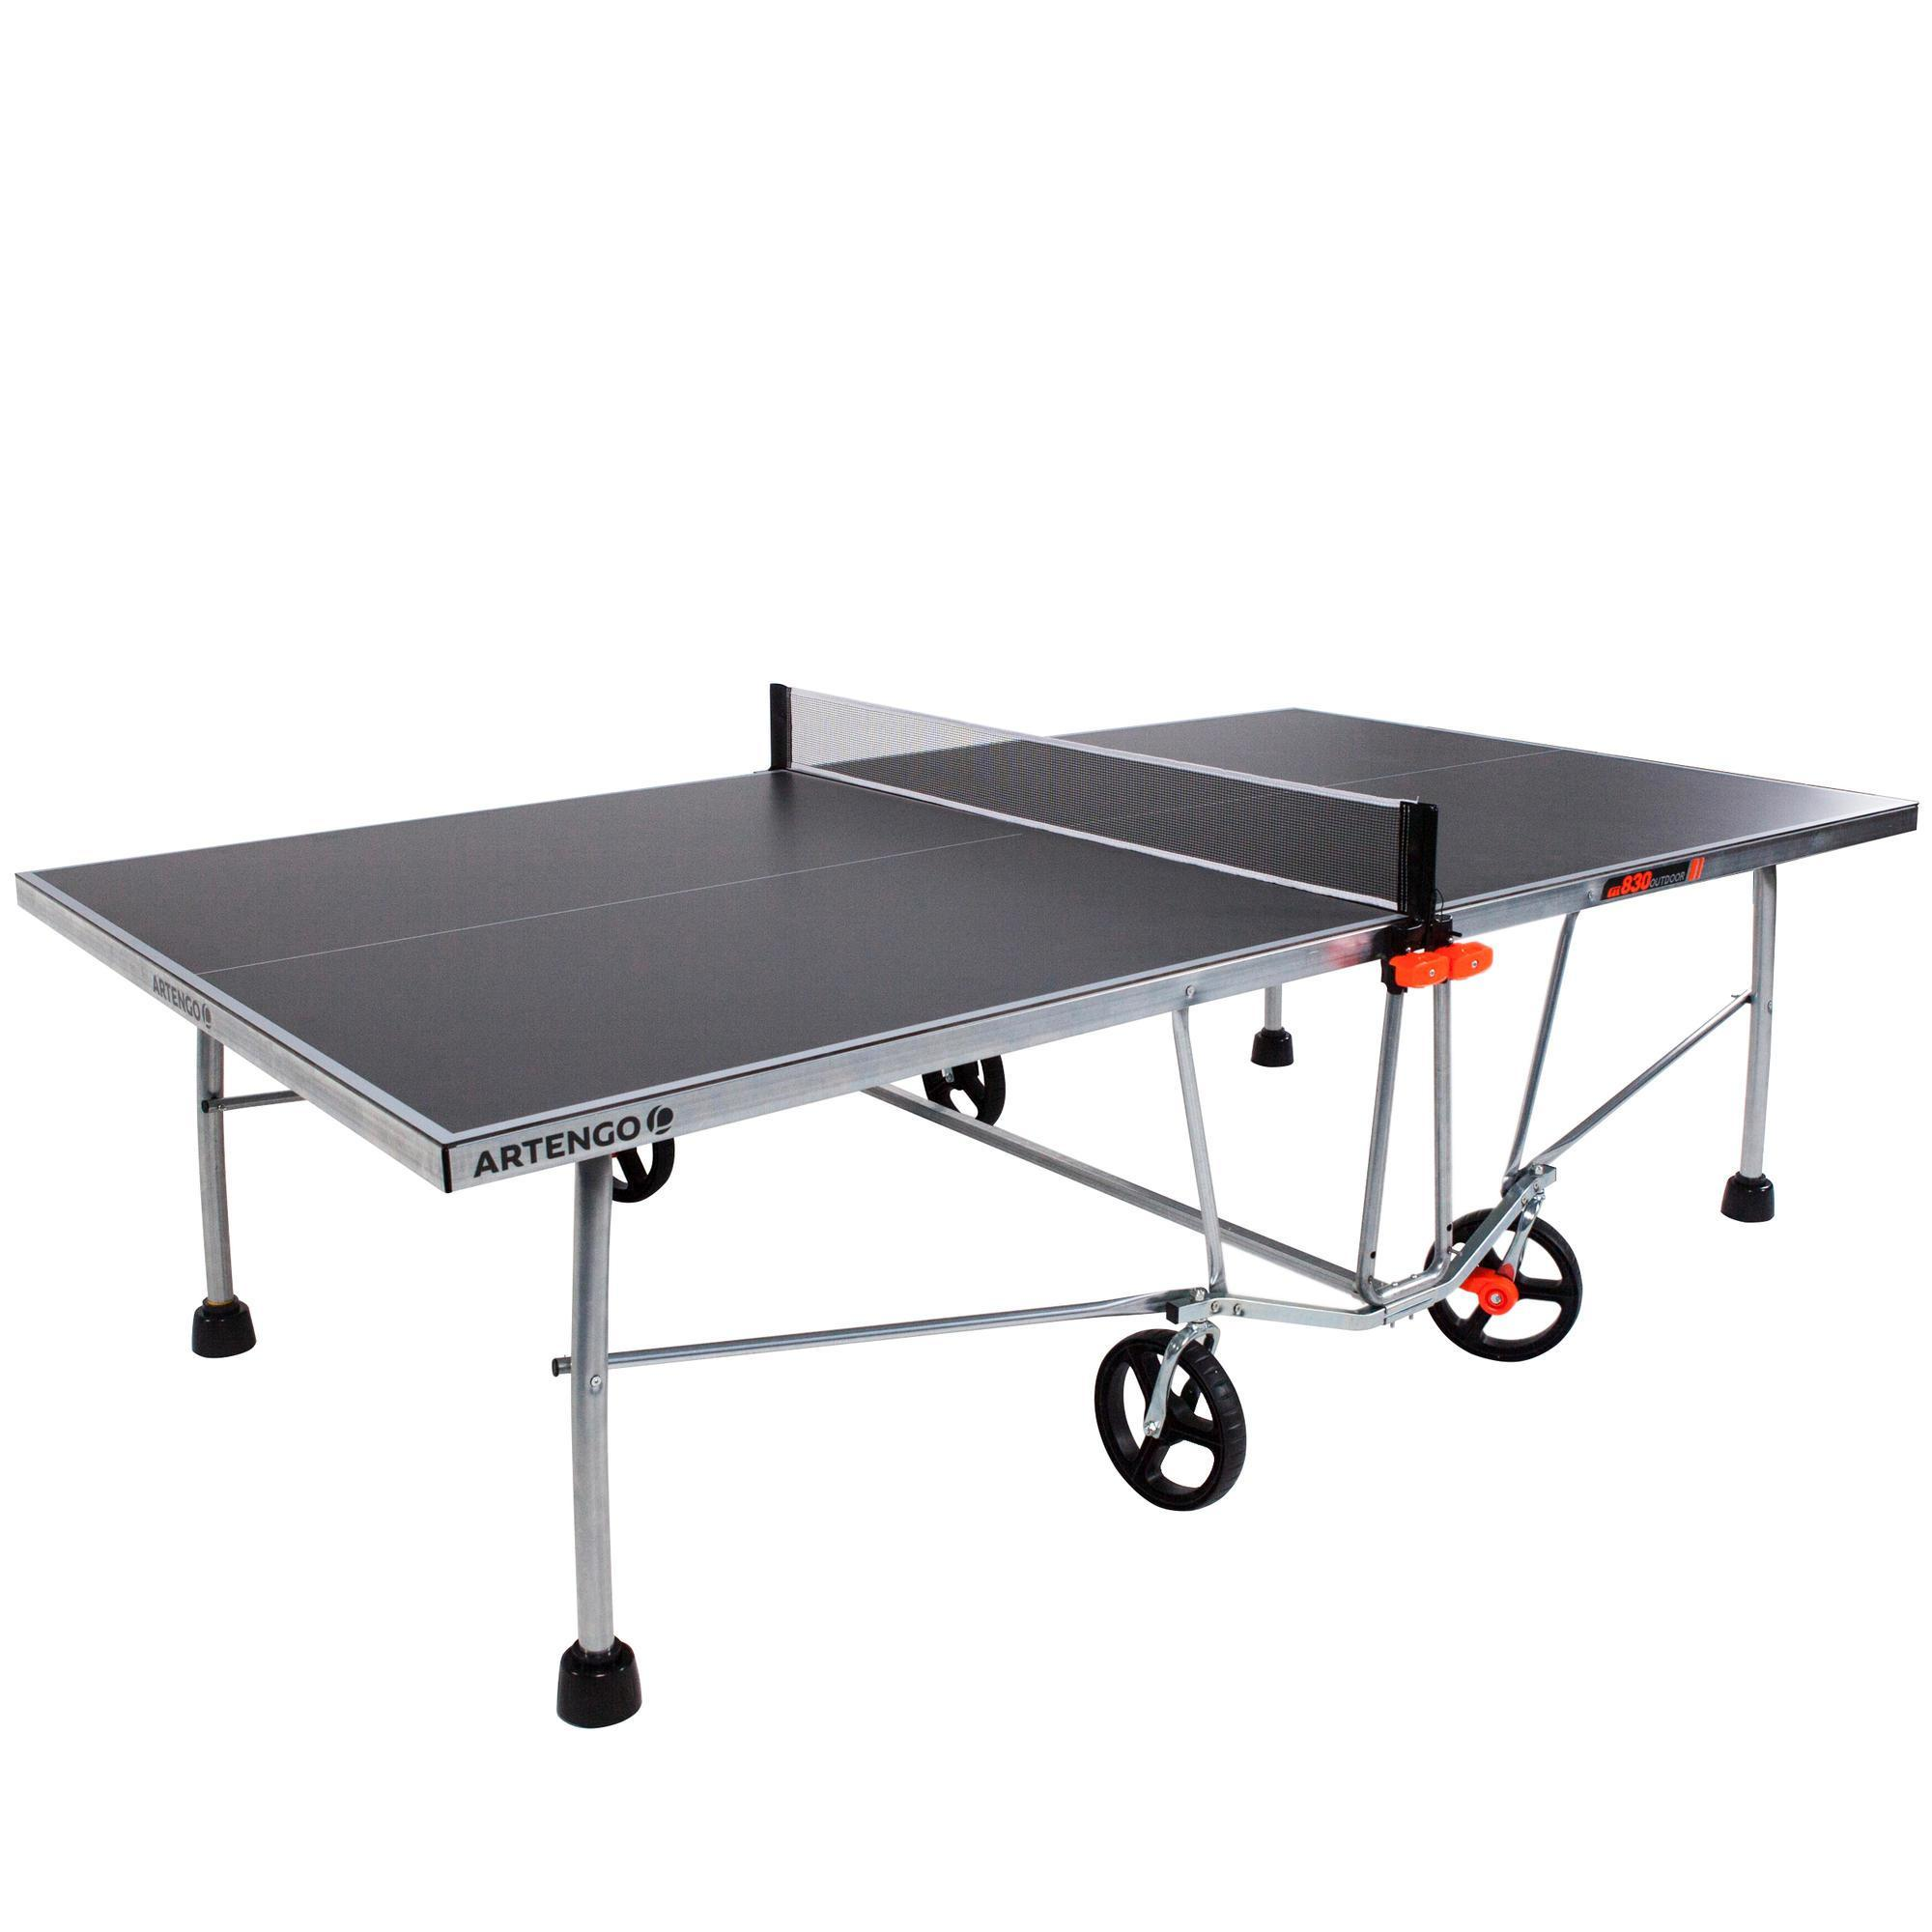 table ping pong outdoor ft830 tennis de table artengo. Black Bedroom Furniture Sets. Home Design Ideas